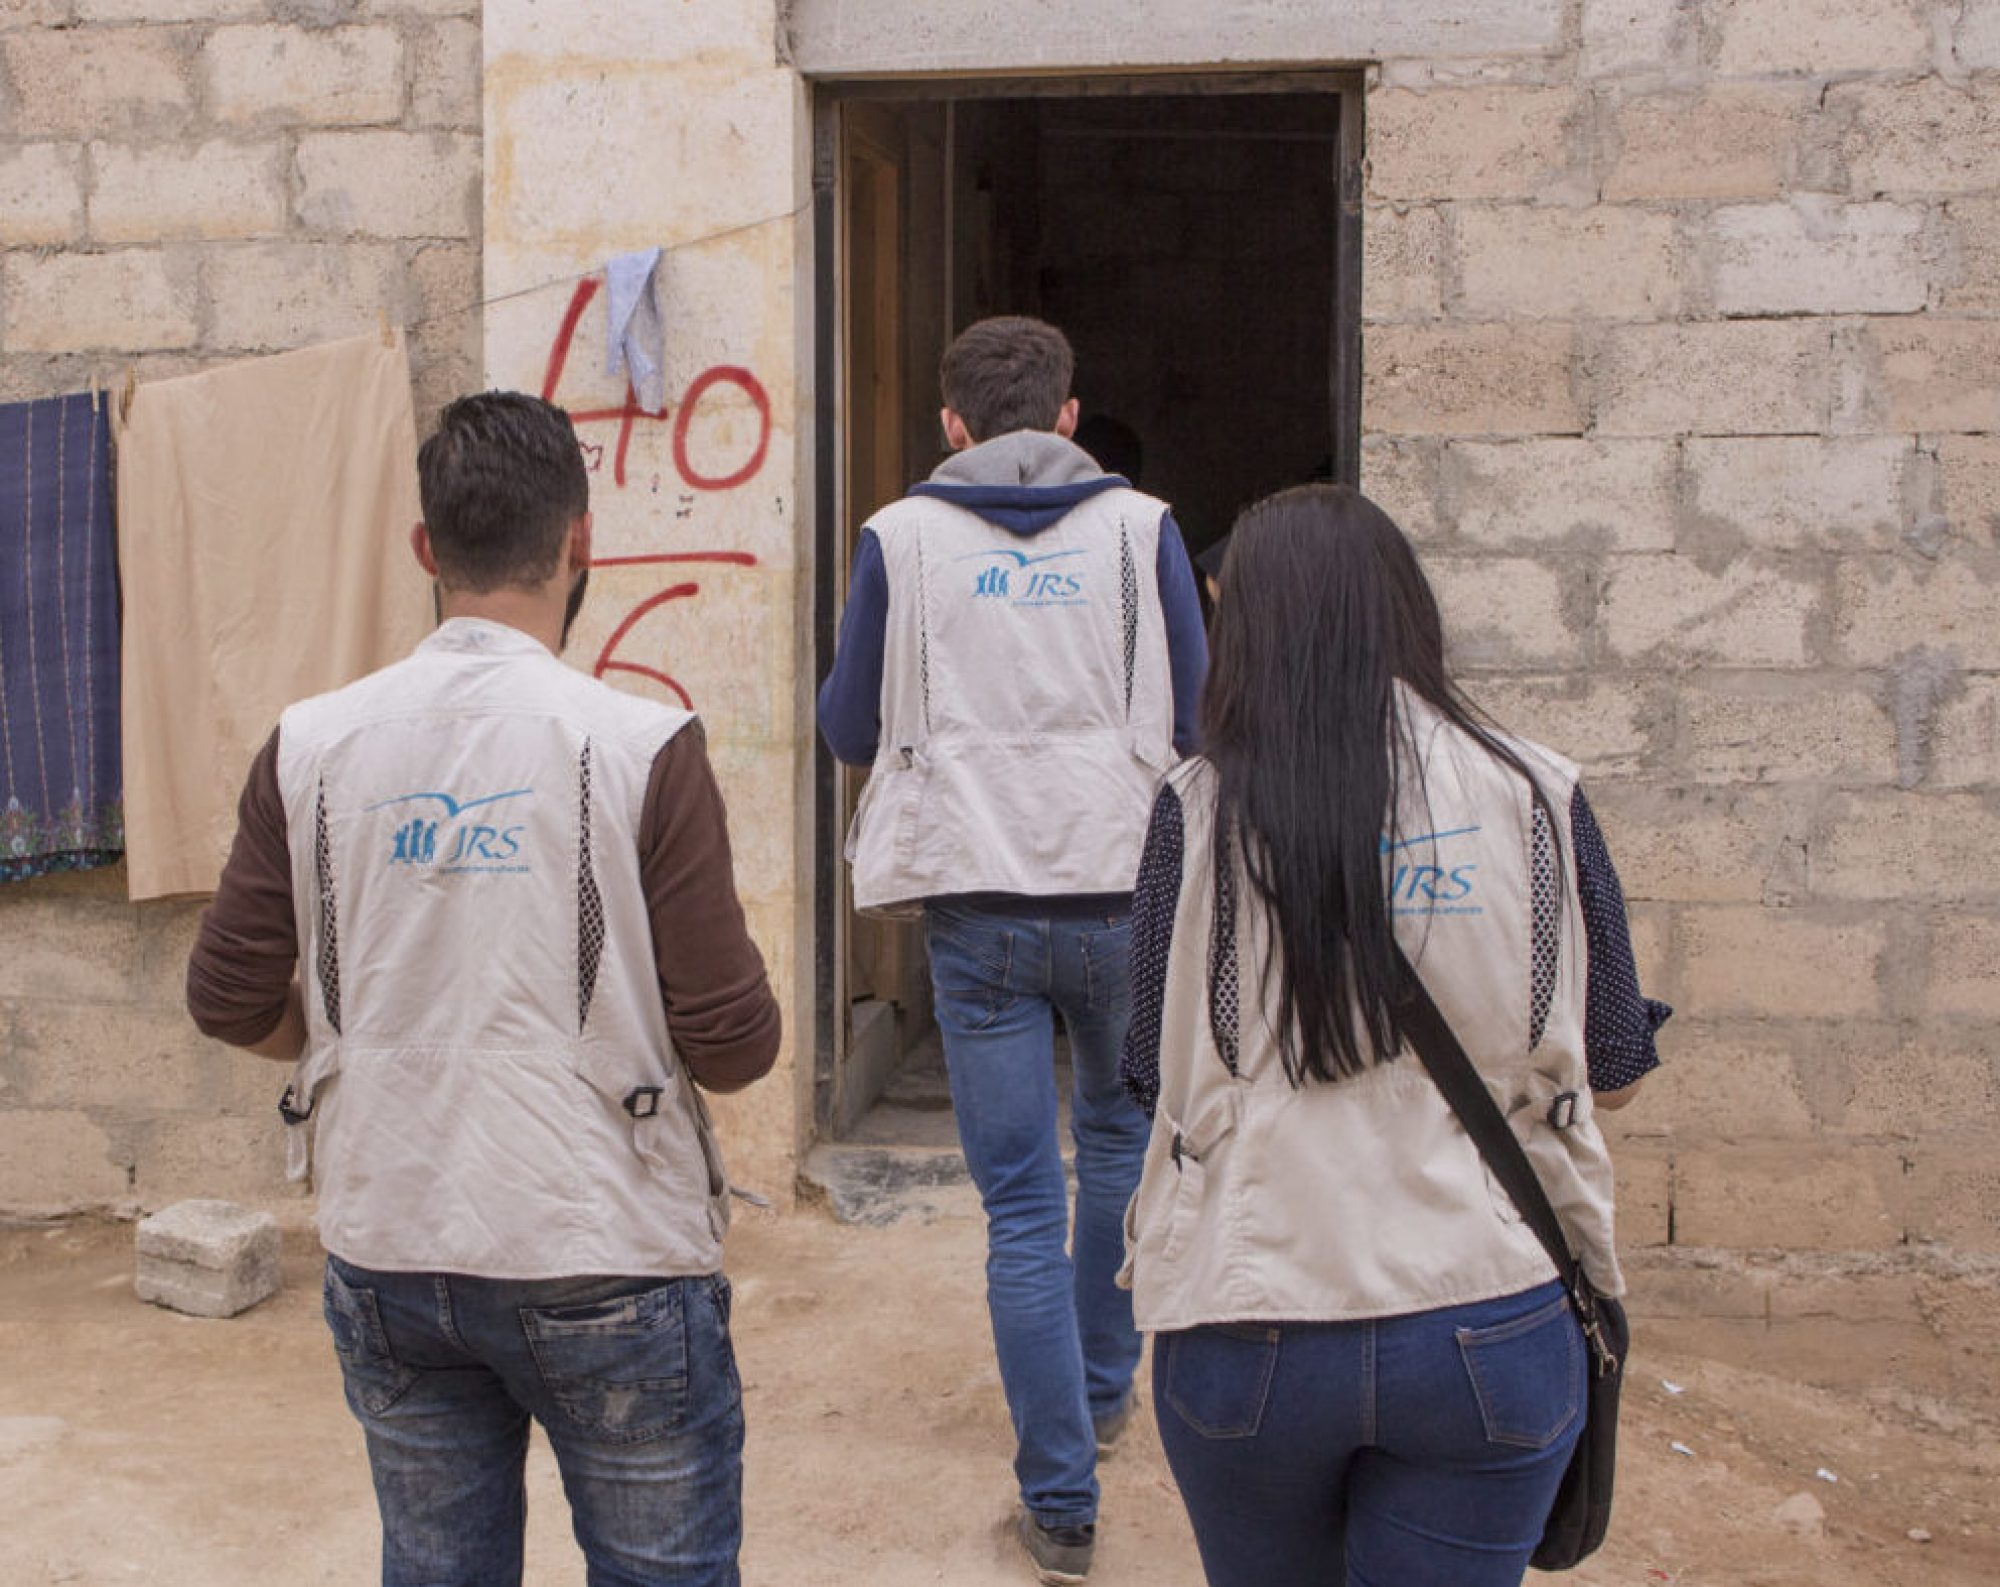 JRS staff in Jibreen, Syria.